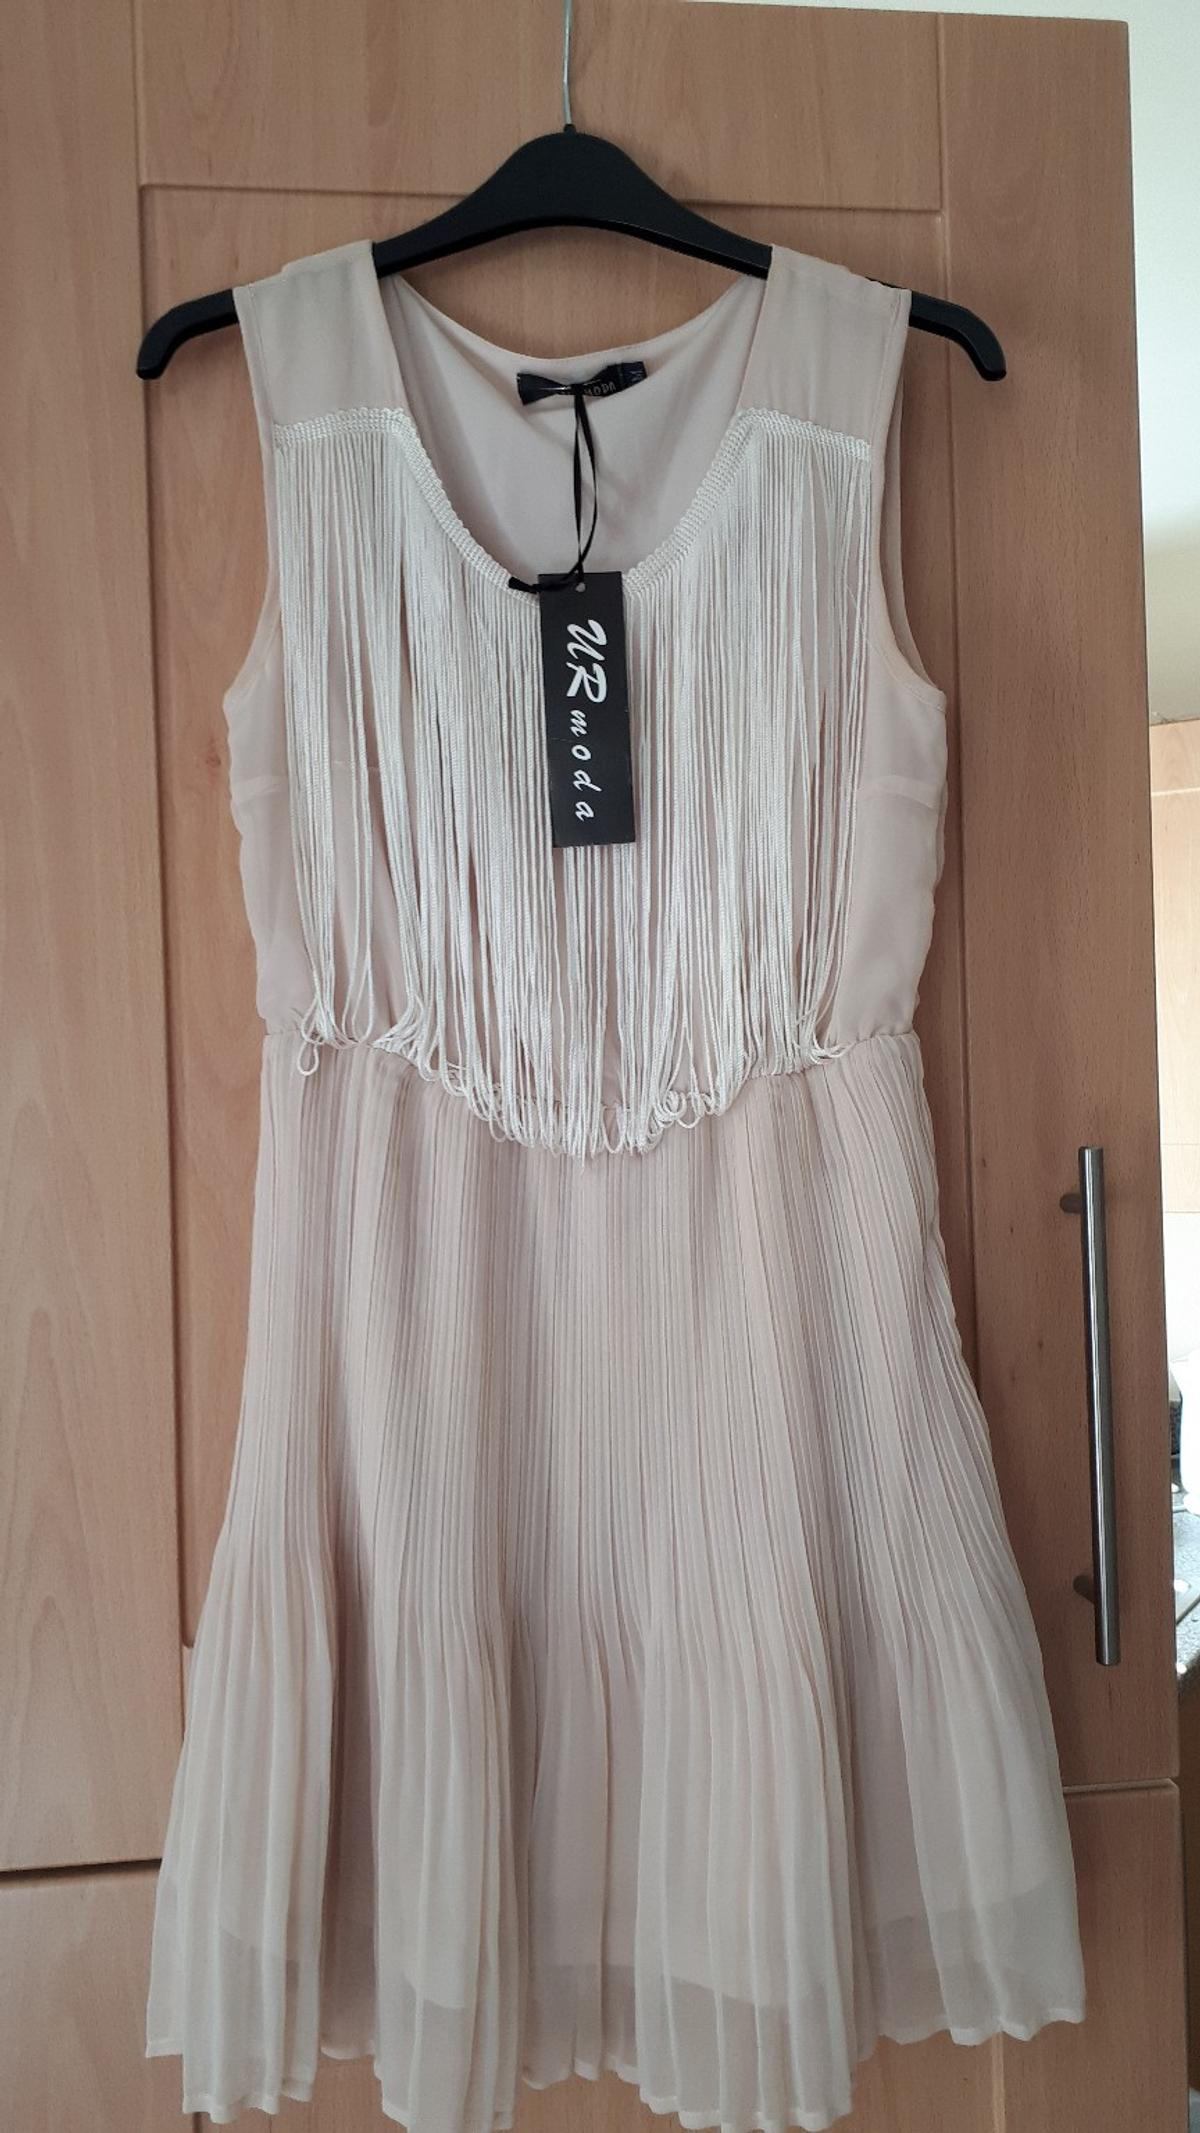 Brand new, never worn, tags still on,